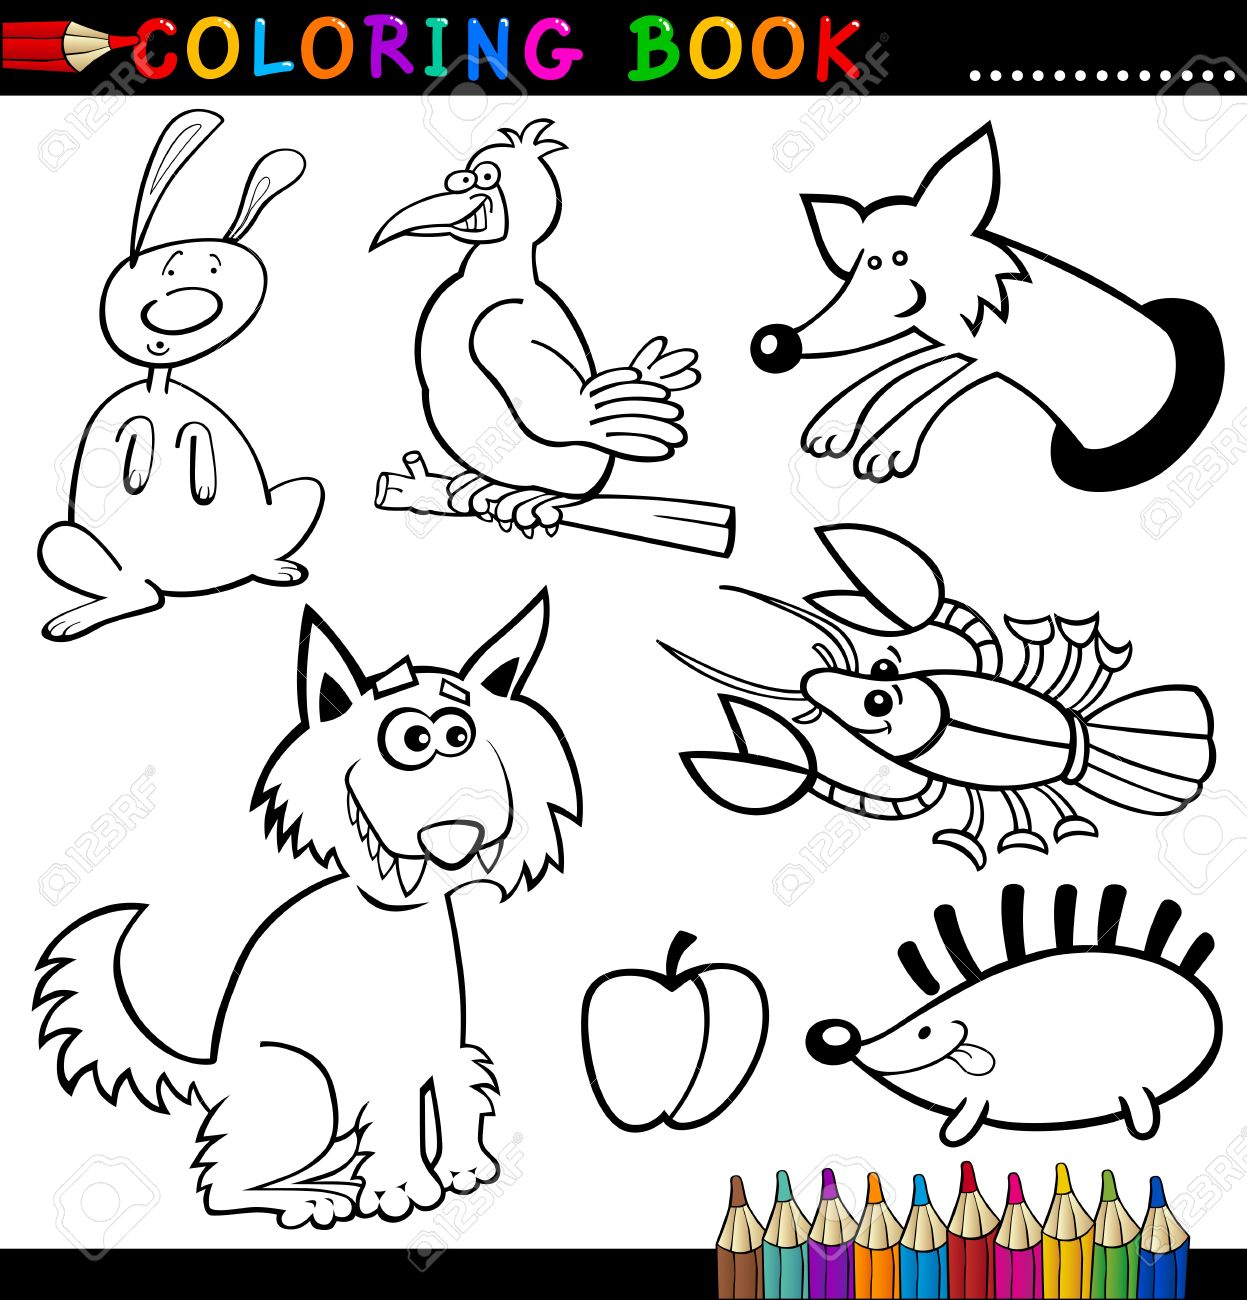 coloring book or page cartoon illustration of funny wild and